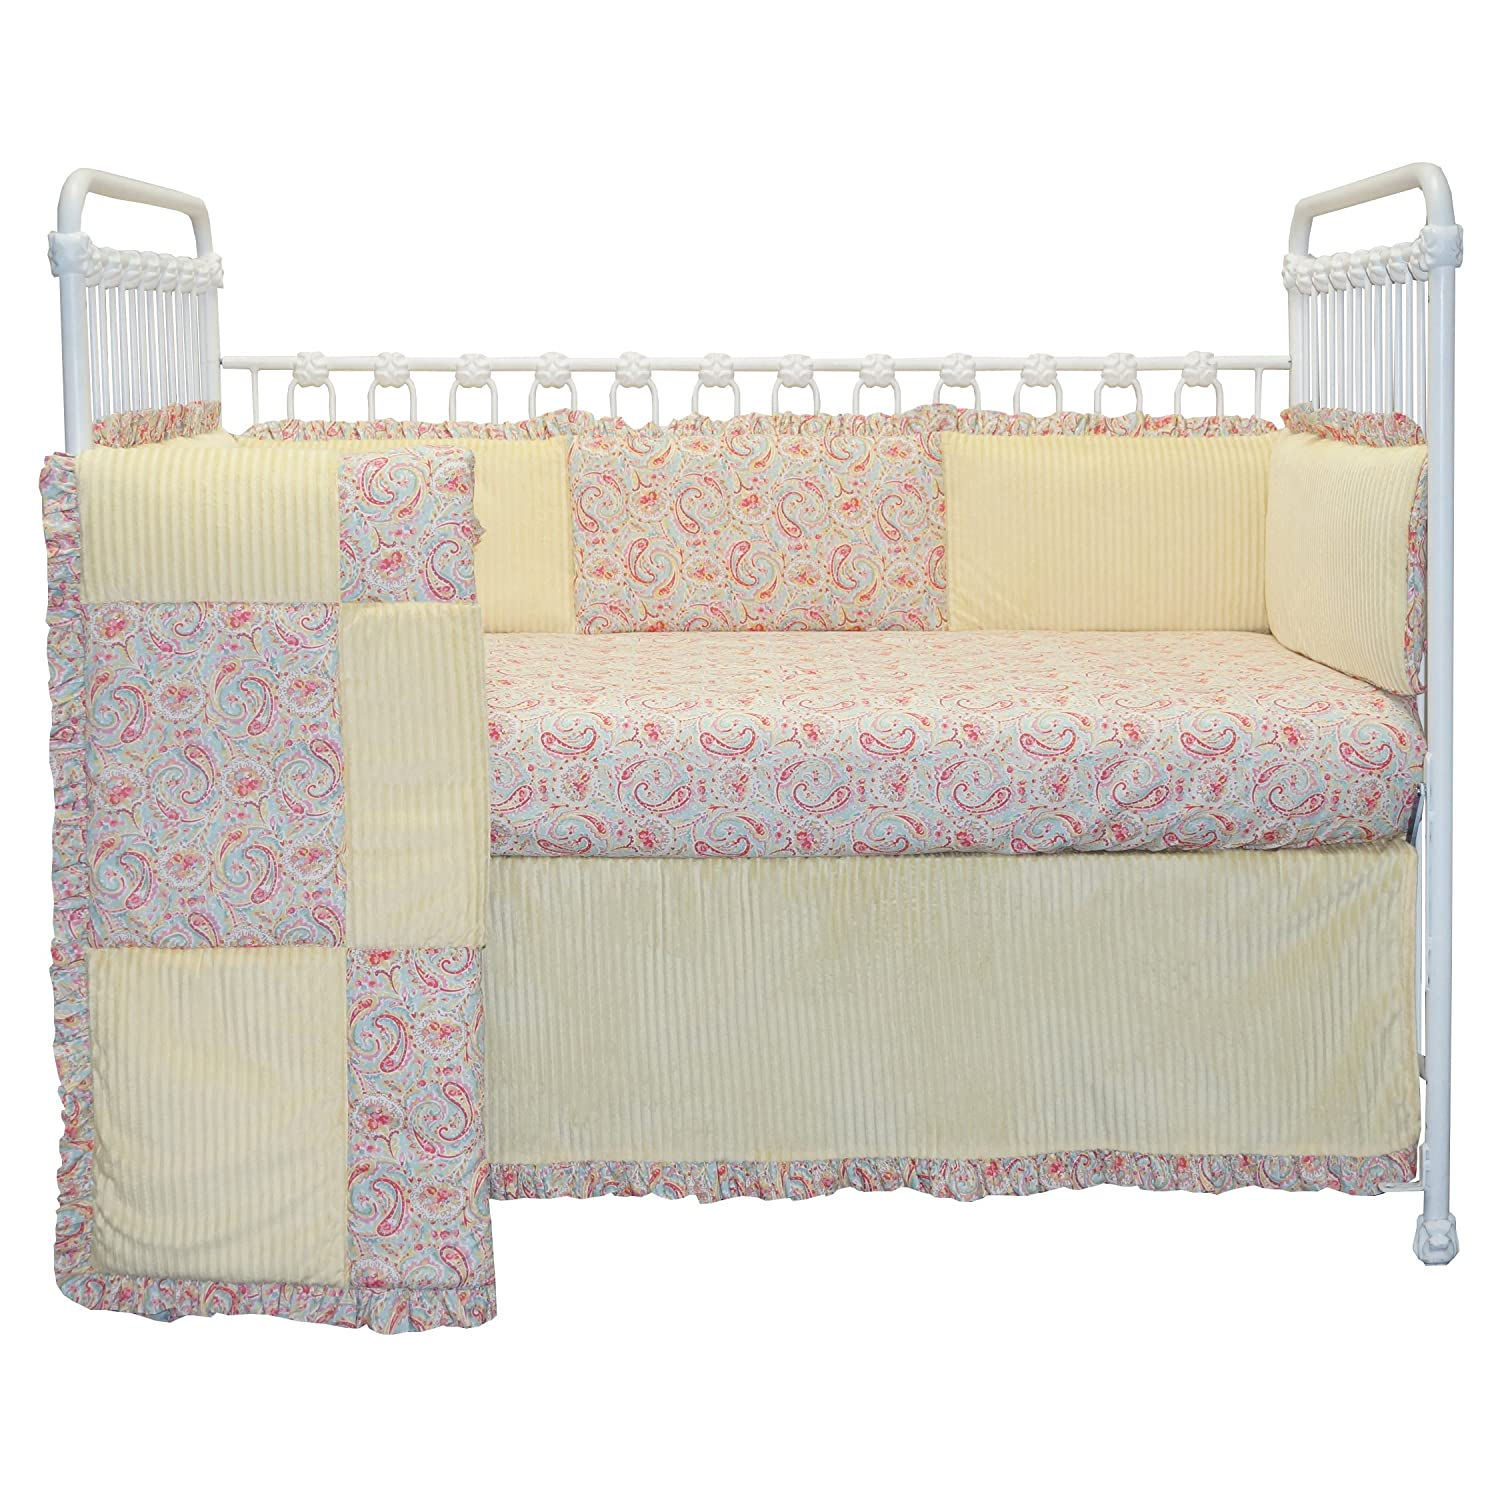 Cotton Tale Designs 100% Cotton Made in The USA Soft Minky Corduroy Country Patchwork Yellow, Pink, Blue Floral Paisley, Shabby Chic Marie 4 Piece Nursery Crib Bedding Set - Baby Shower Gift Girl/Boy 91UC0xfxrmL._SL1500_